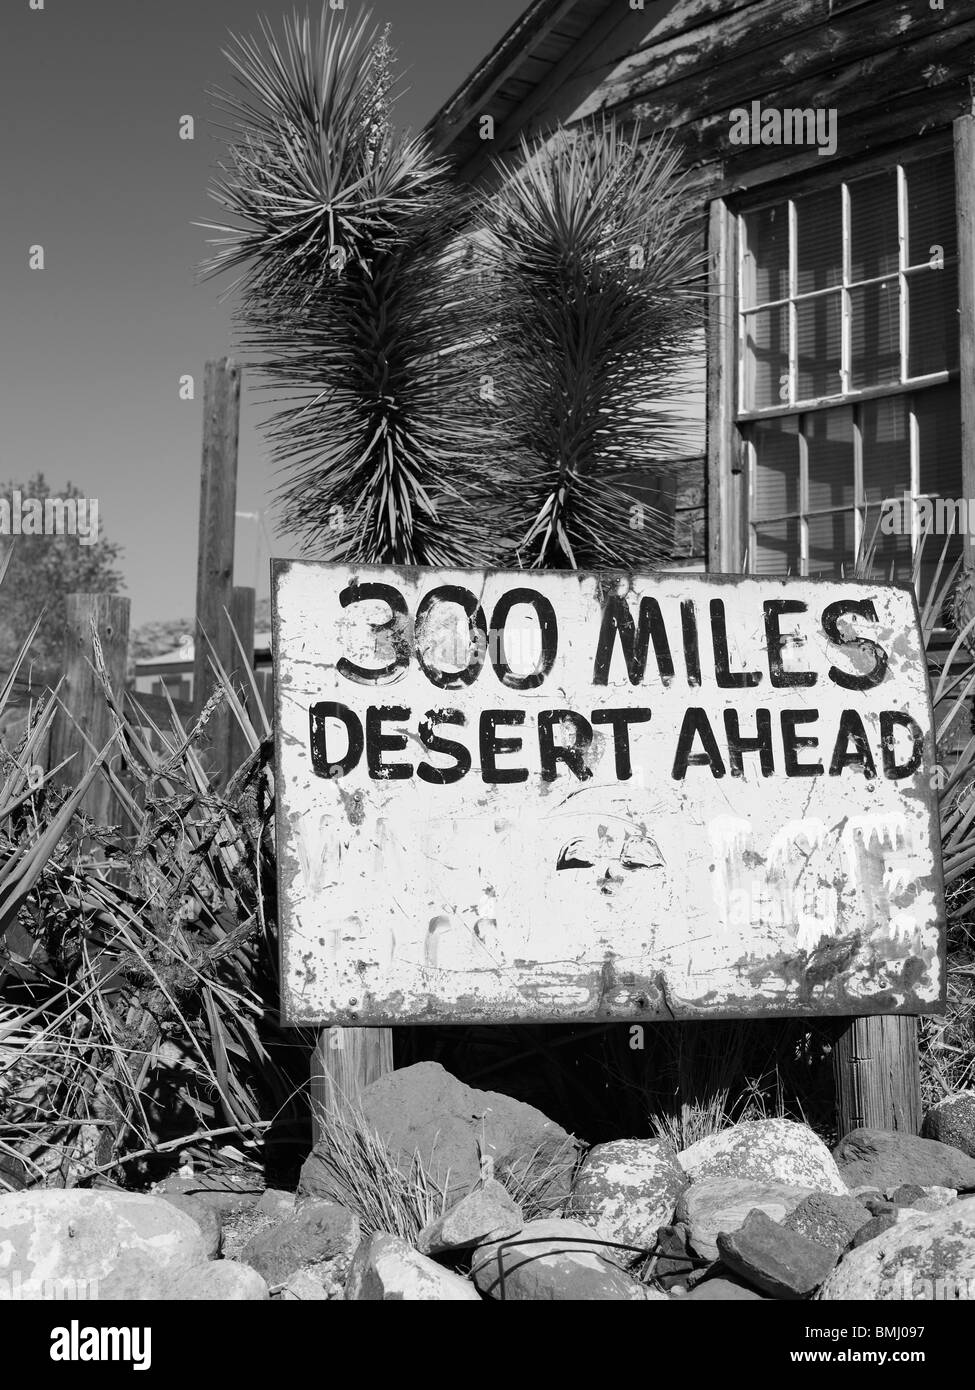 Road sign in the desert - Stock Image